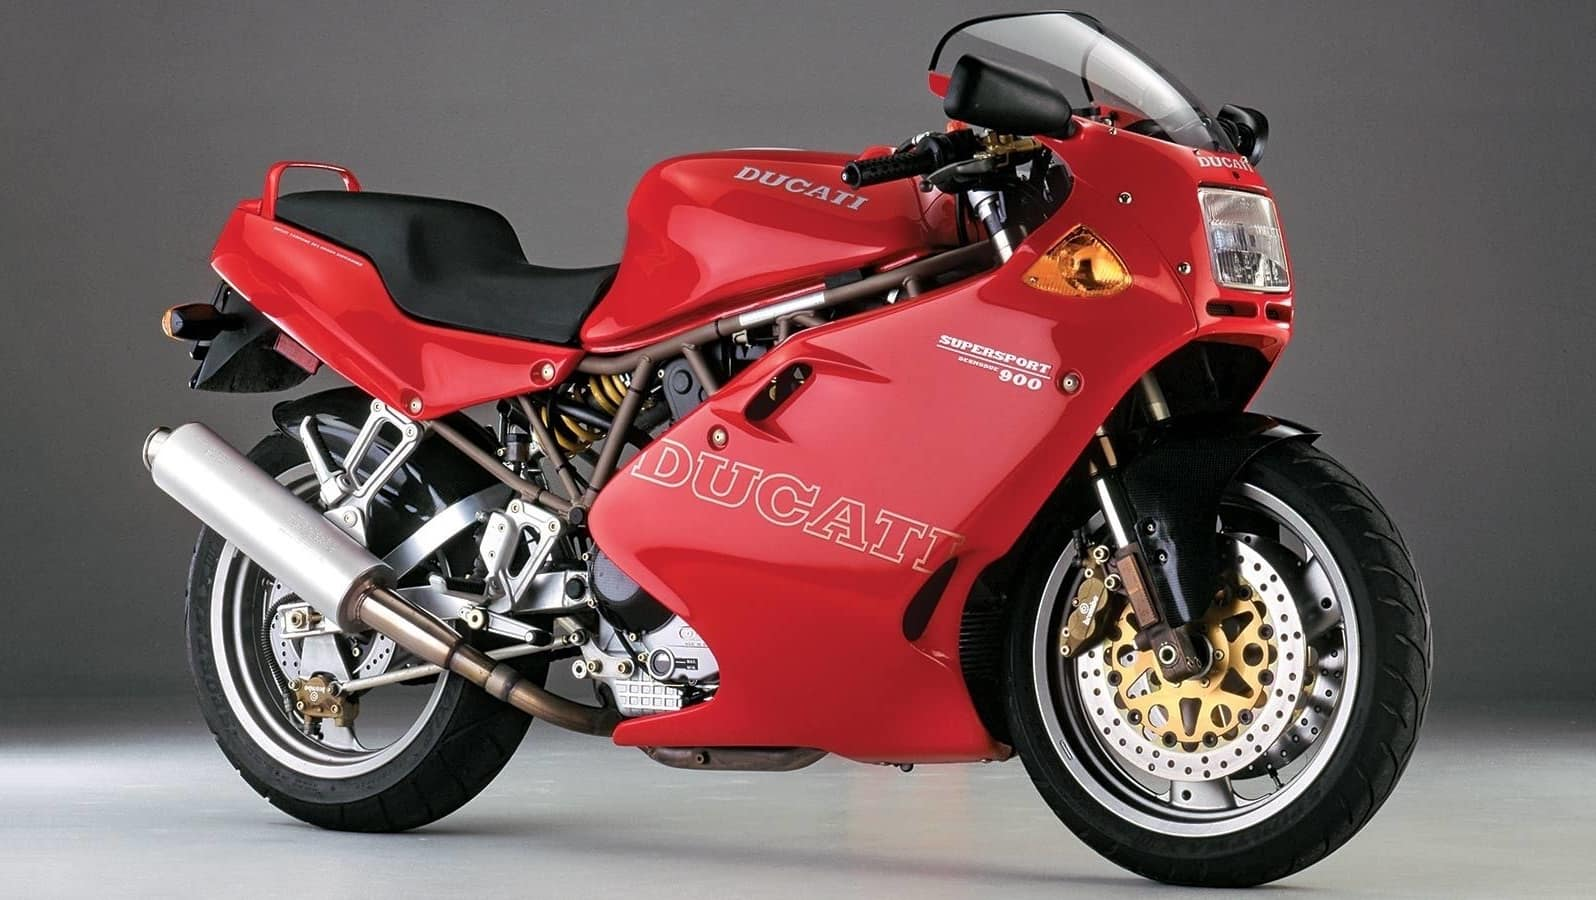 The Ducati 900SS, one of the most well-loved affordable classic motorcycles